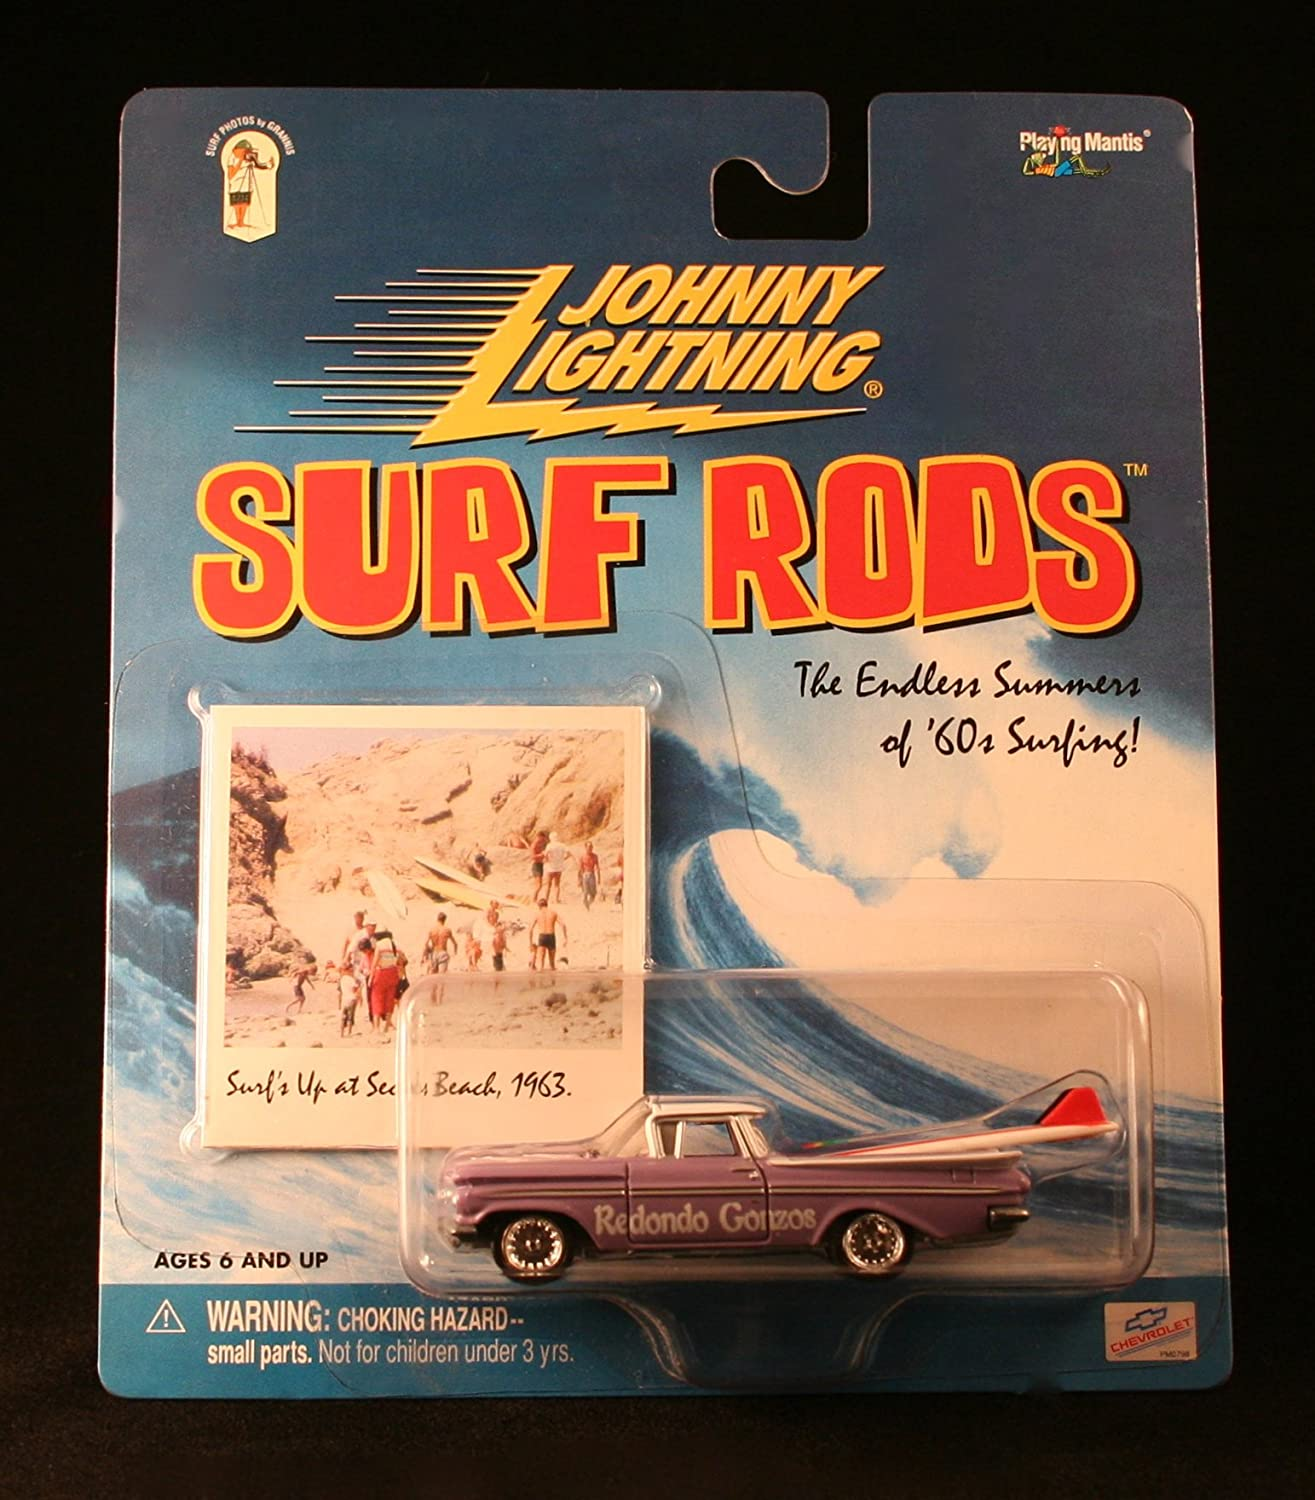 ROTONDO GONZOS  lila  Johnny Lightning Lightning Johnny 2000 SURF RODS Release One 1:64 Scale Die Cast Vehicle by J 79ea44